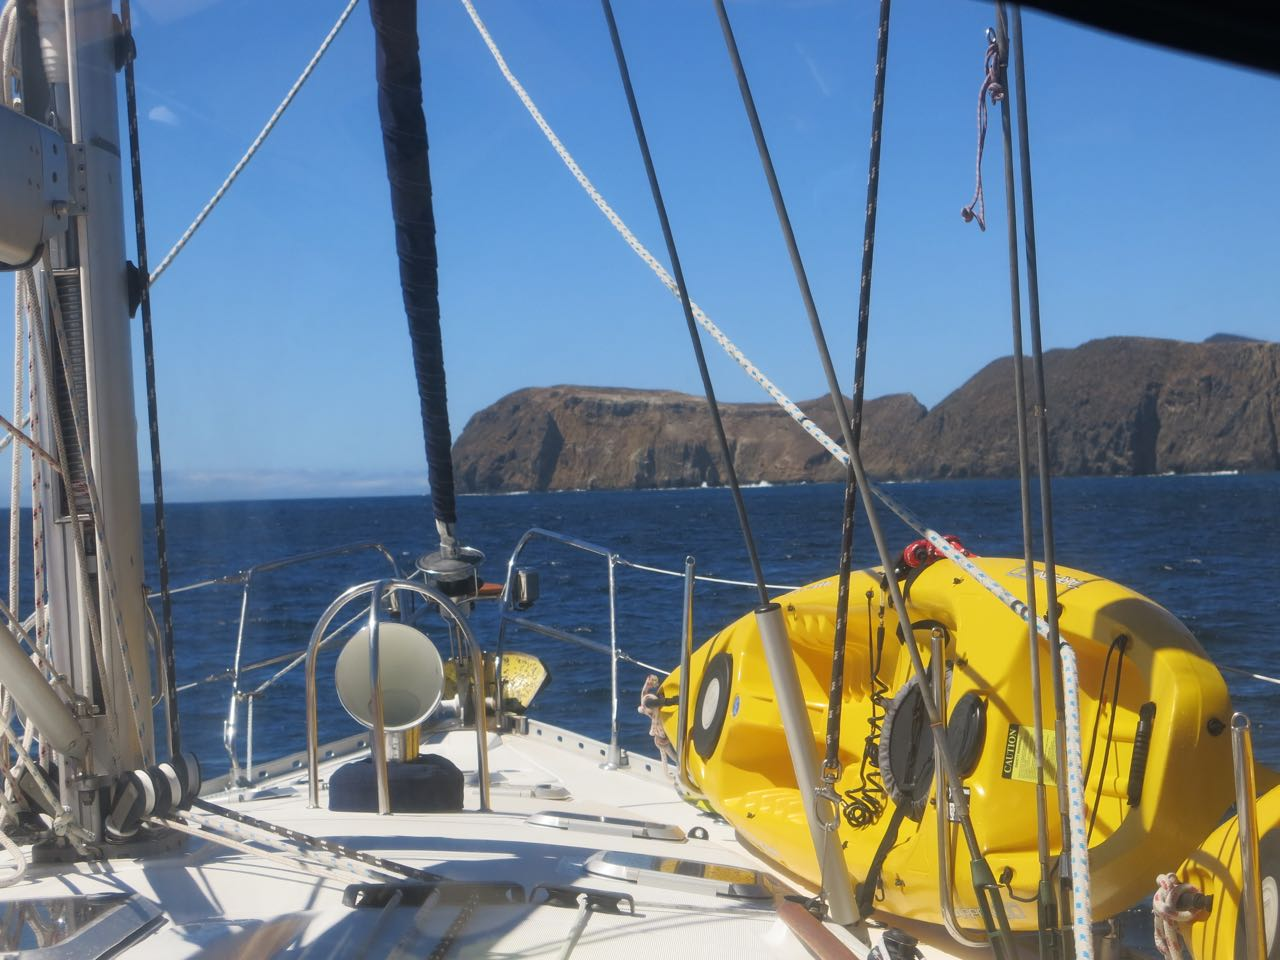 Go to East Fish Camp on Anacapa with Capt. Dan Ryder and Sai Channel Islands